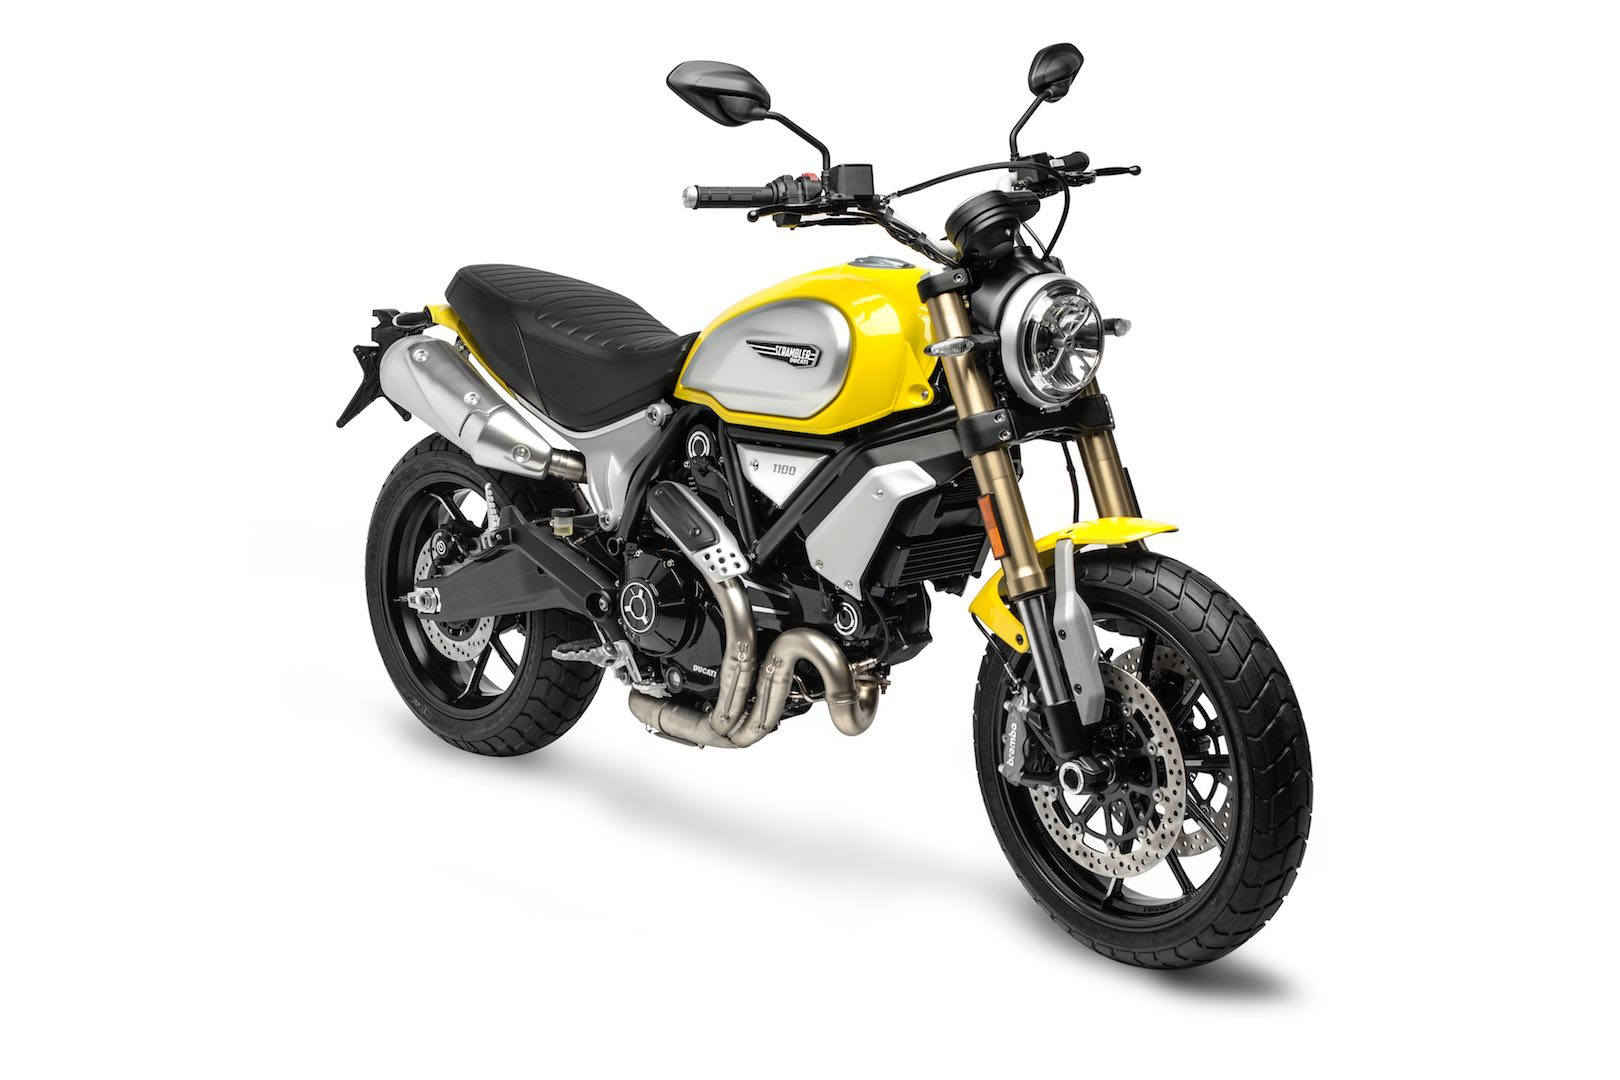 2018 Ducati Scrambler 1100 for sale